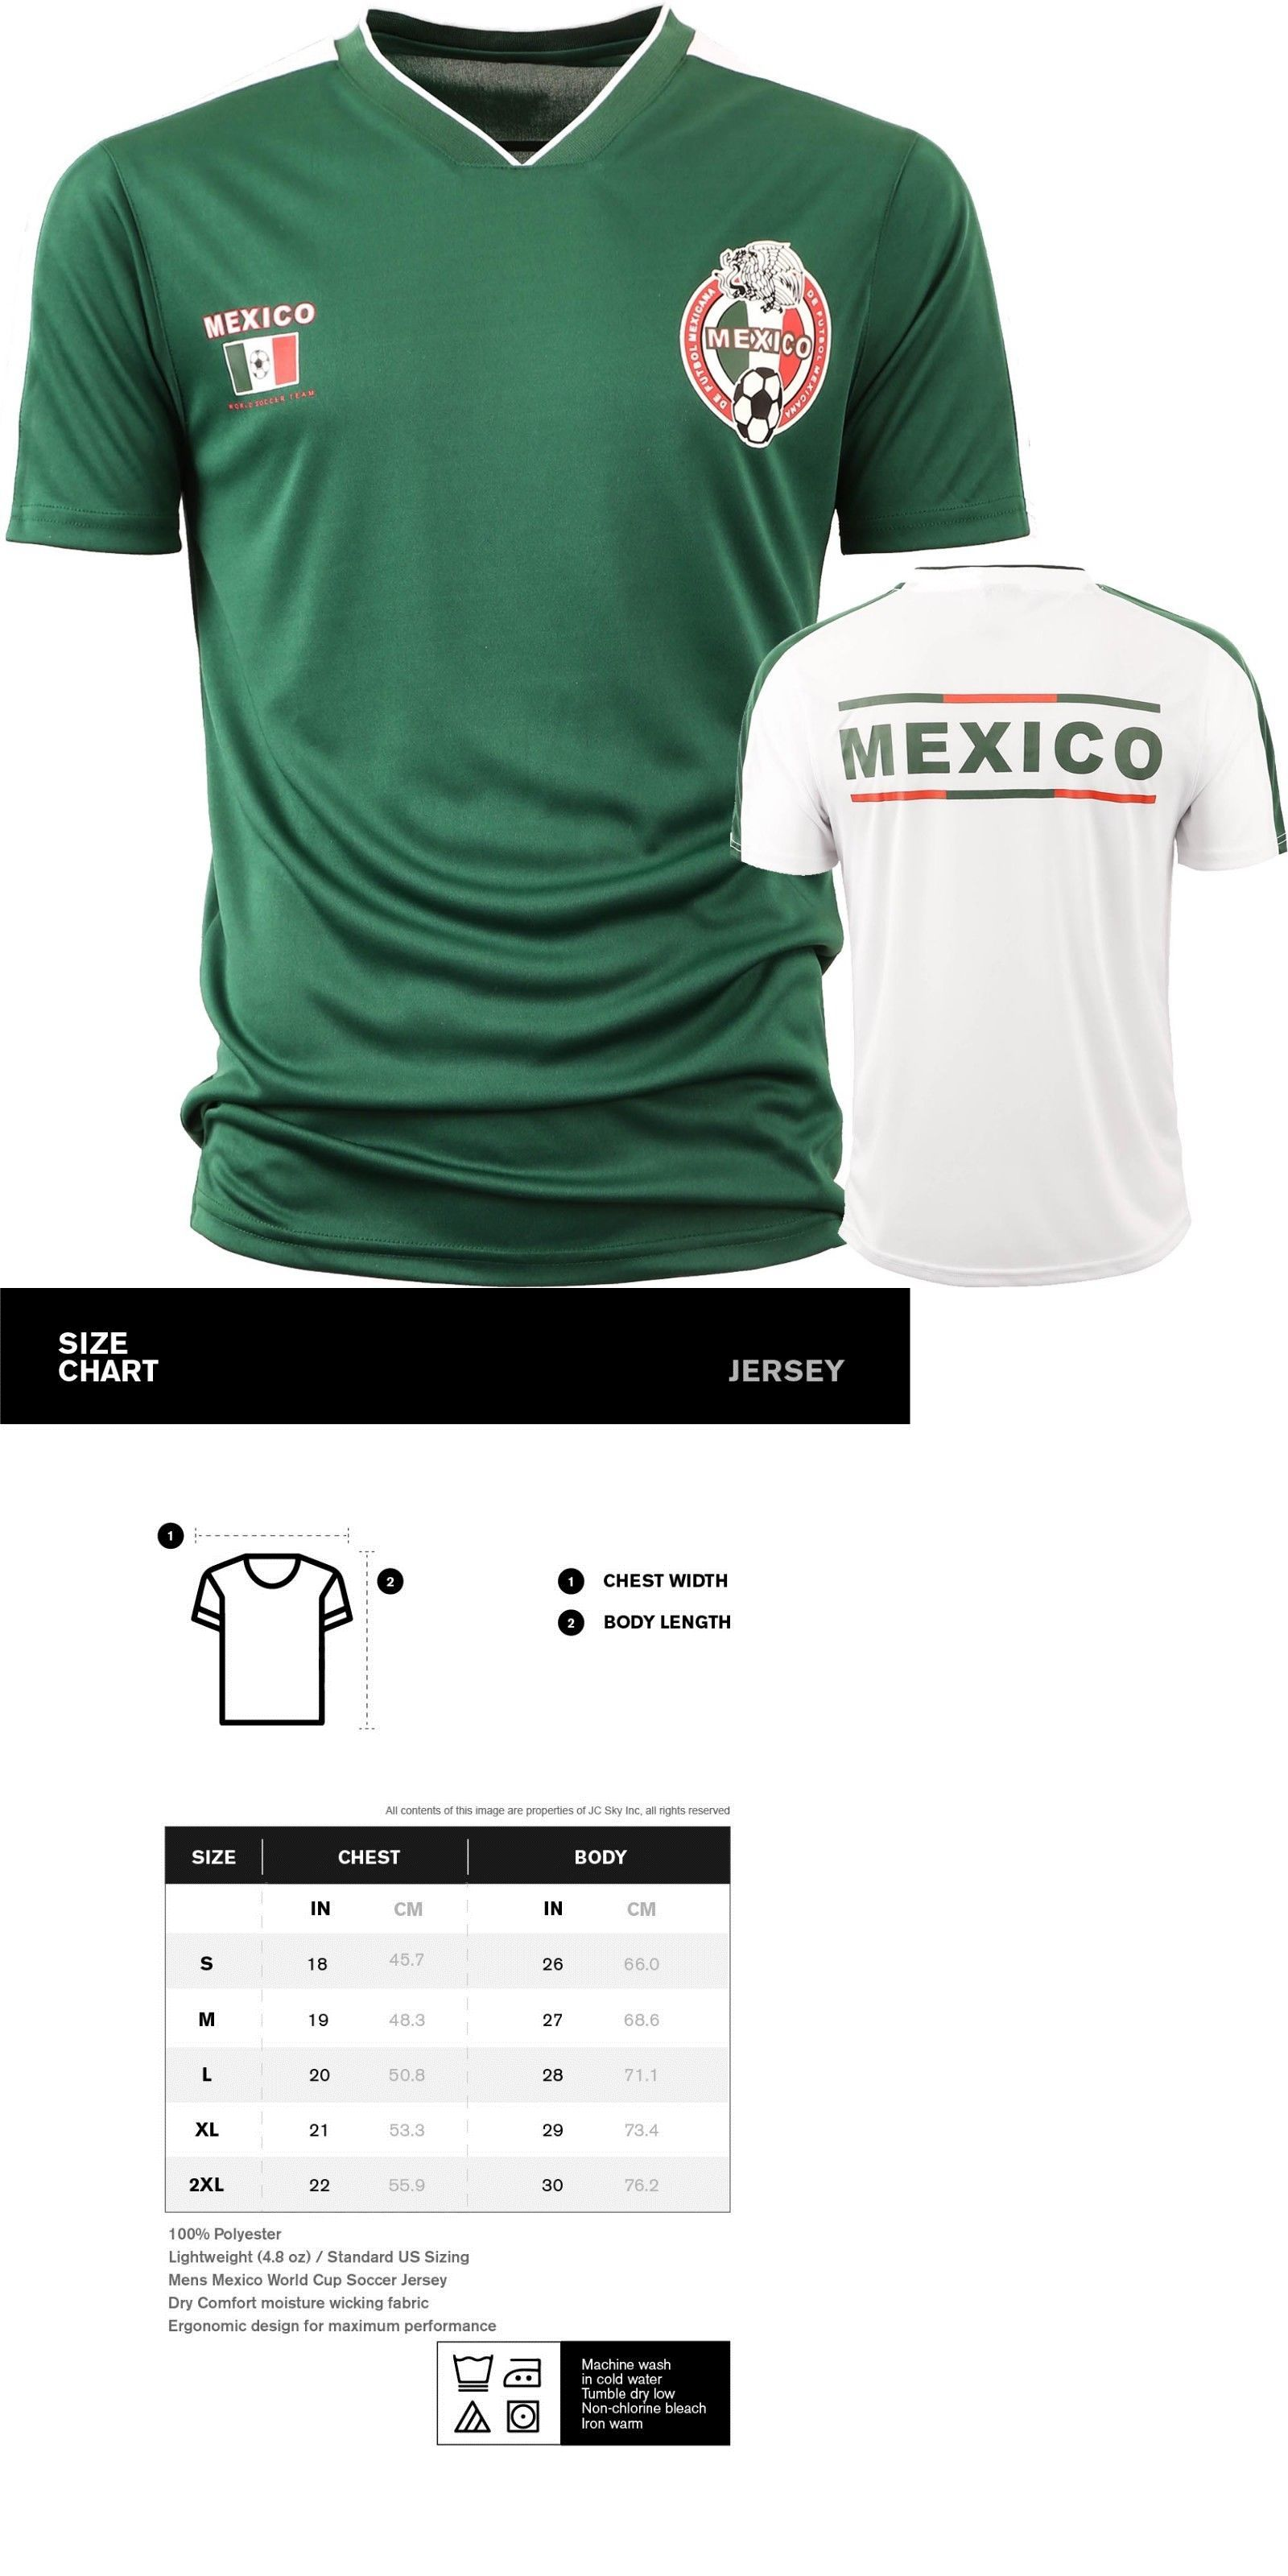 4673cd05c Clothing Shoes and Accessories 159178  Mexico Jersey Both Colors White And  Green 2018 World Cup Men S- 2Xl Soccer -  BUY IT NOW ONLY   19.94 on eBay!